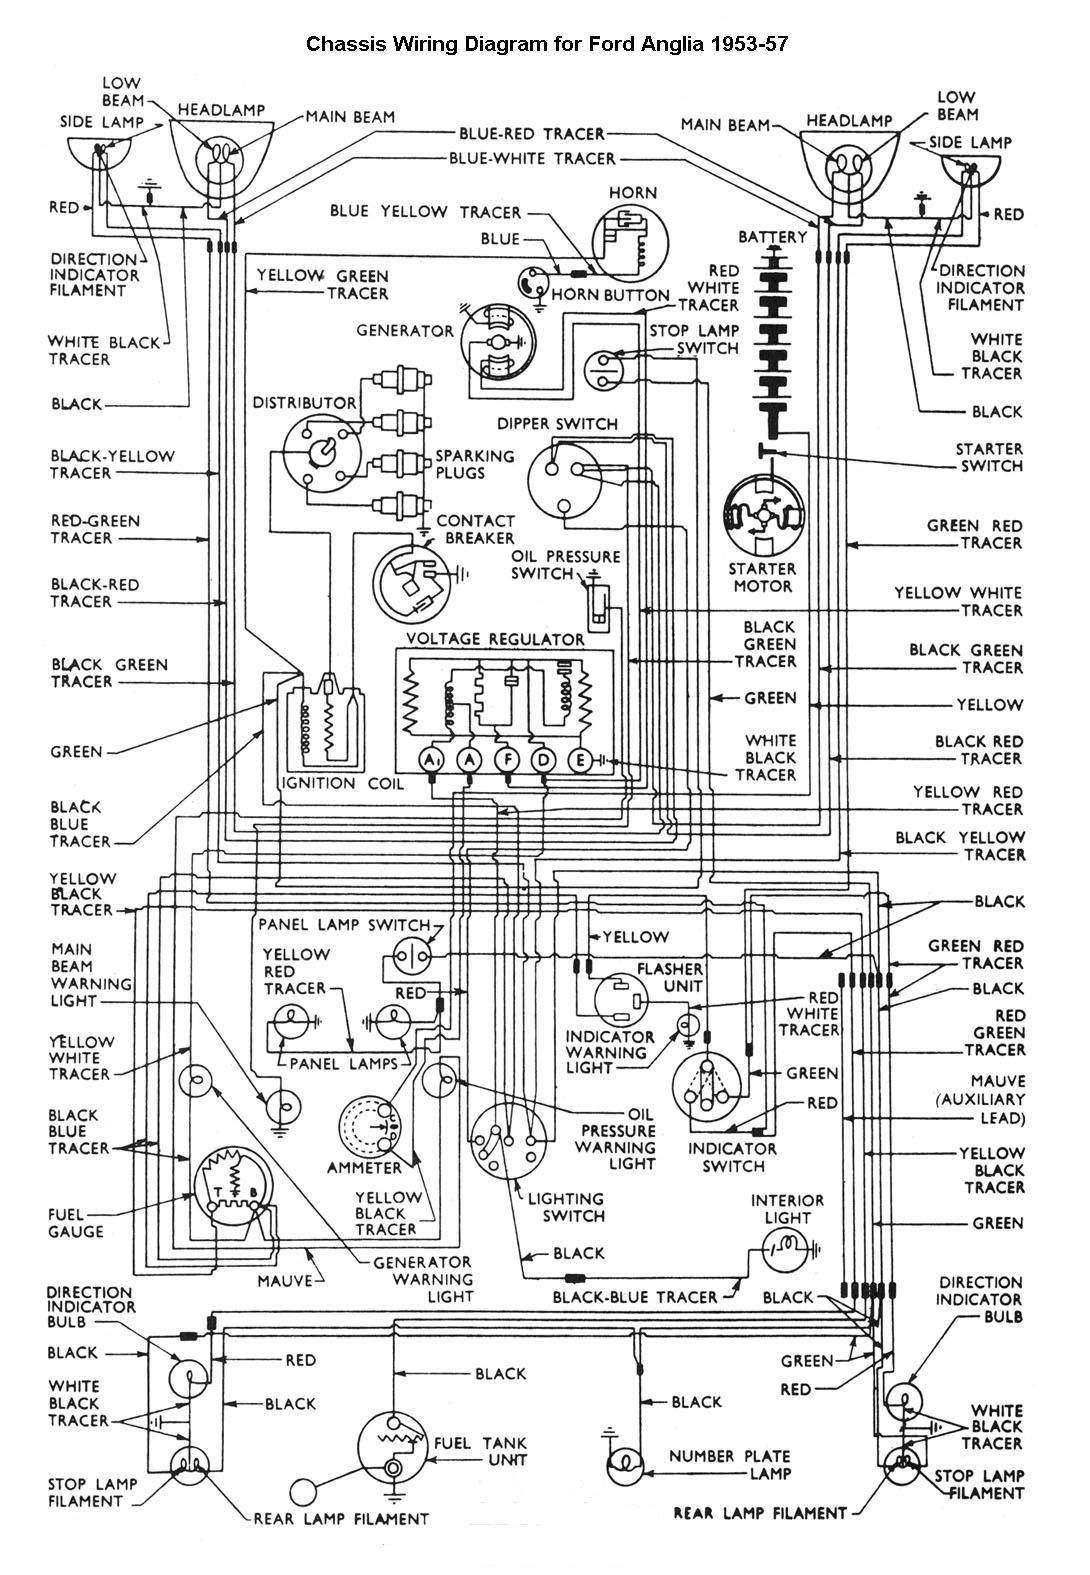 car wiring diagram auto repair cars car wiring diagram